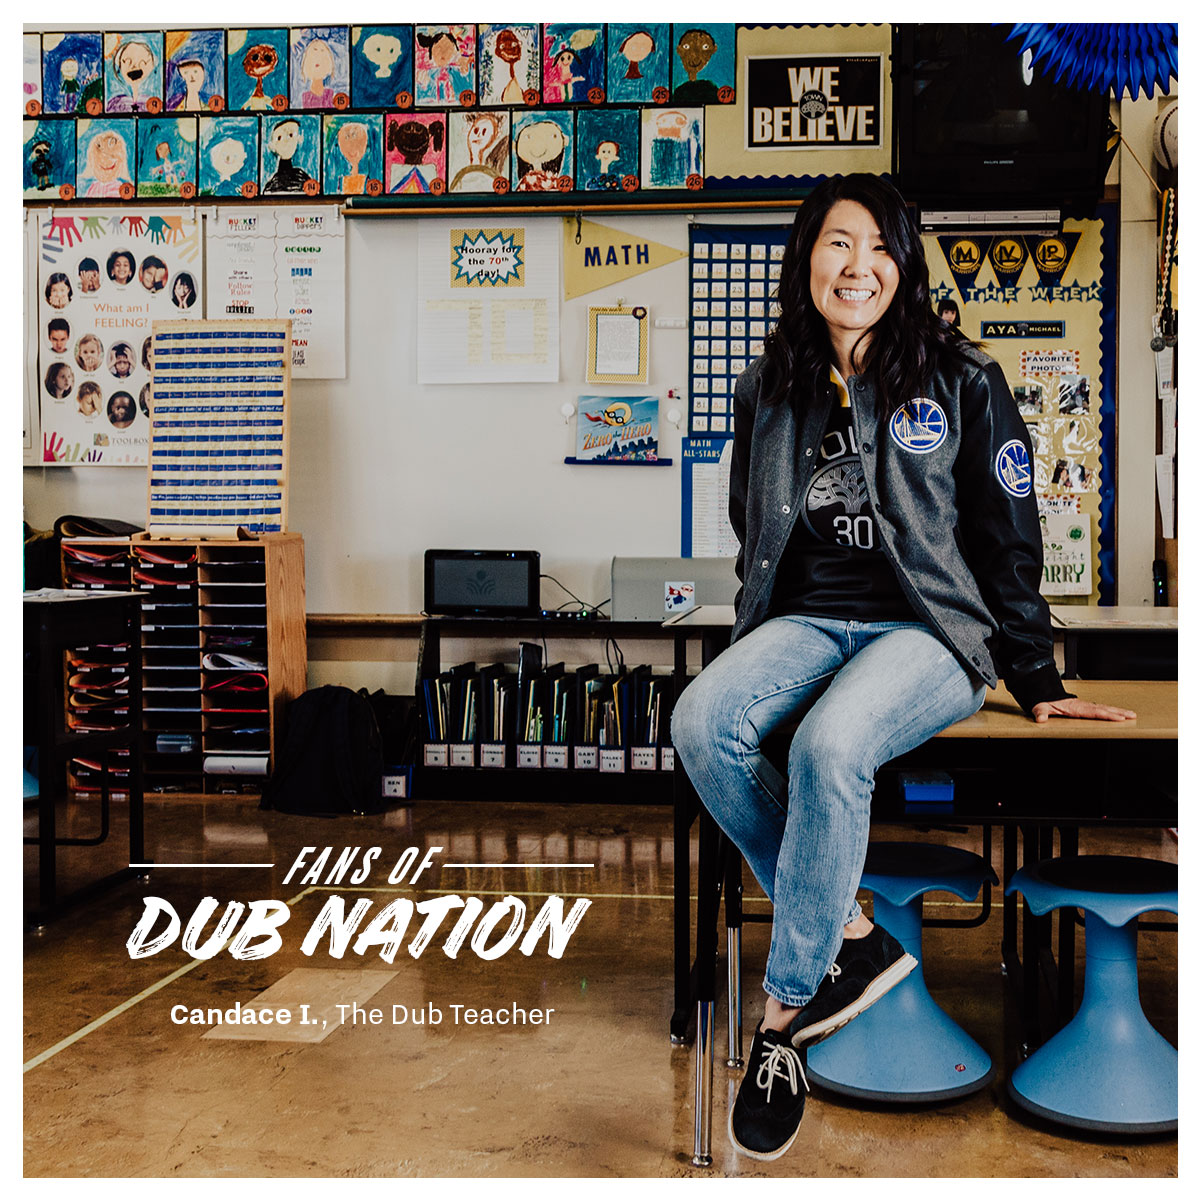 Fans of Dub Nation: Candace I  | Golden State Warriors